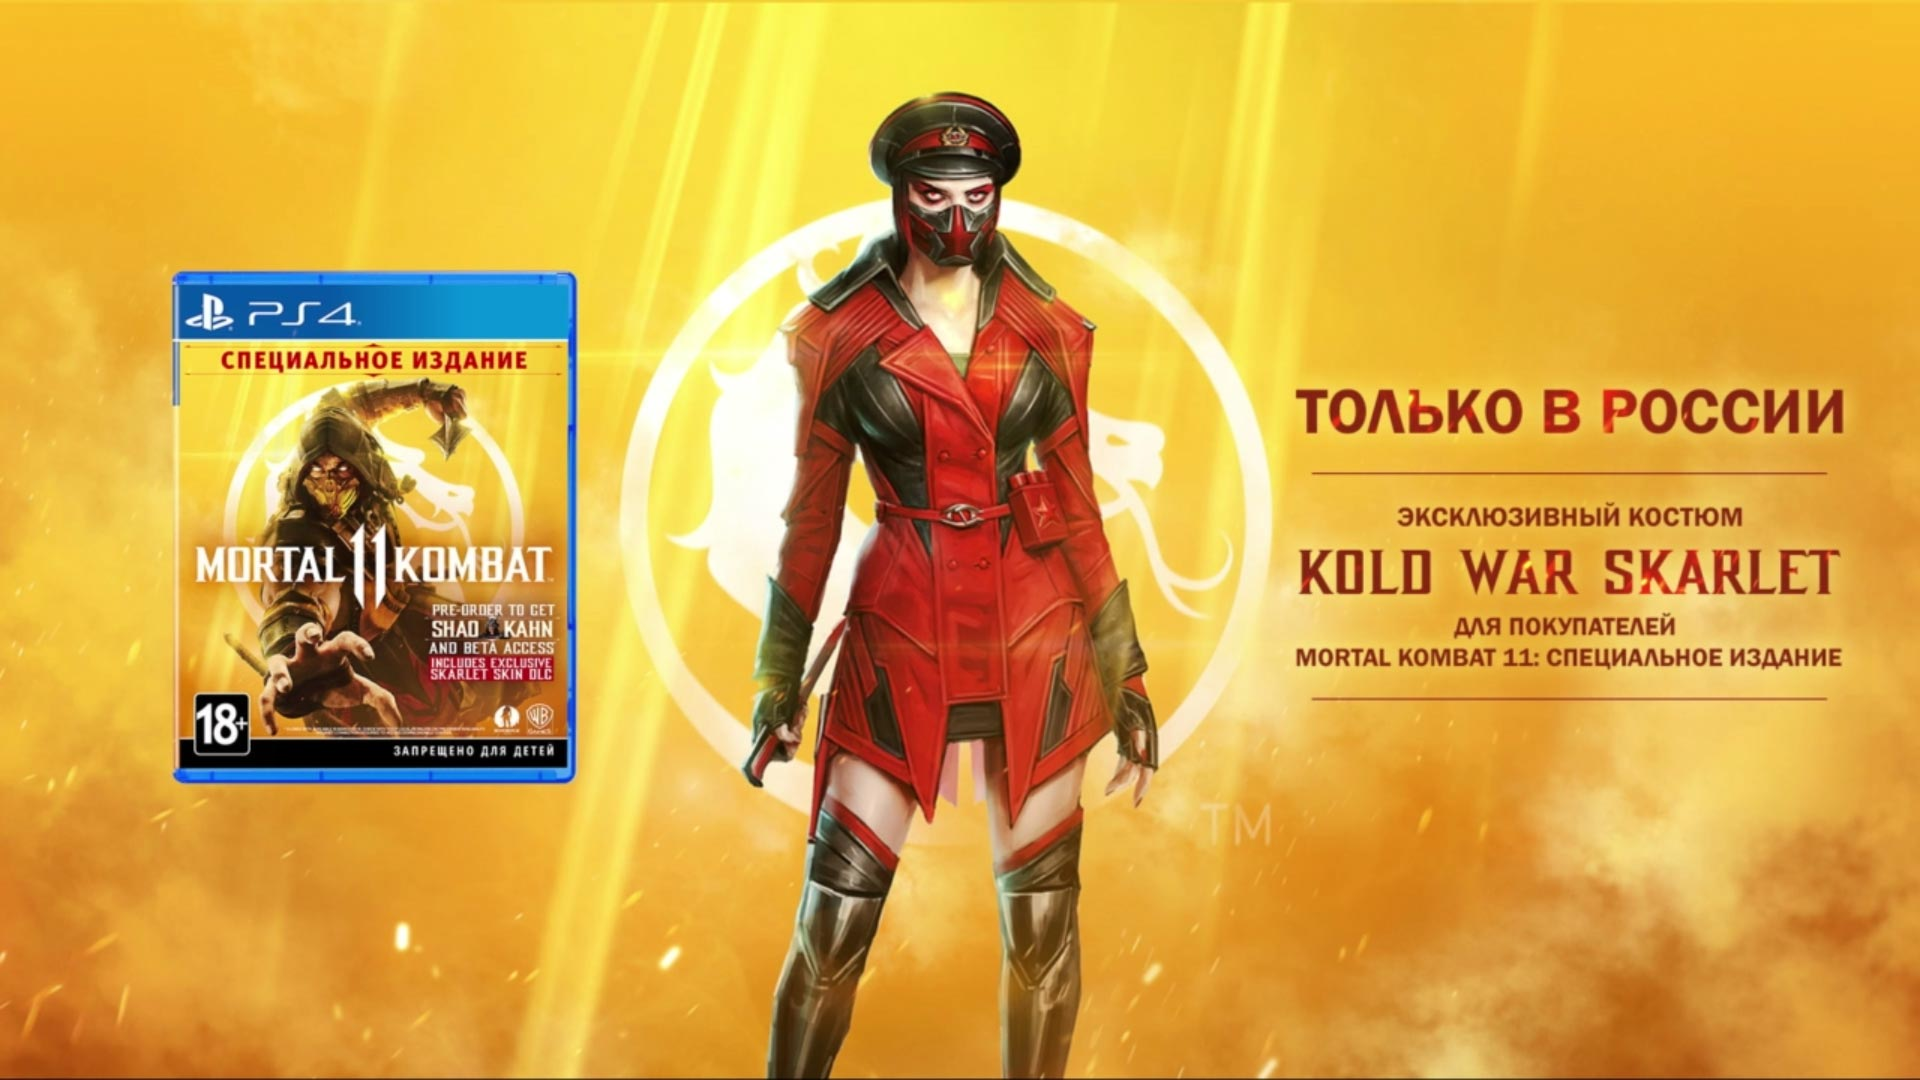 Skarlet's Russia exclusive costume in Mortal Kombat 11 1 out of 3 image gallery